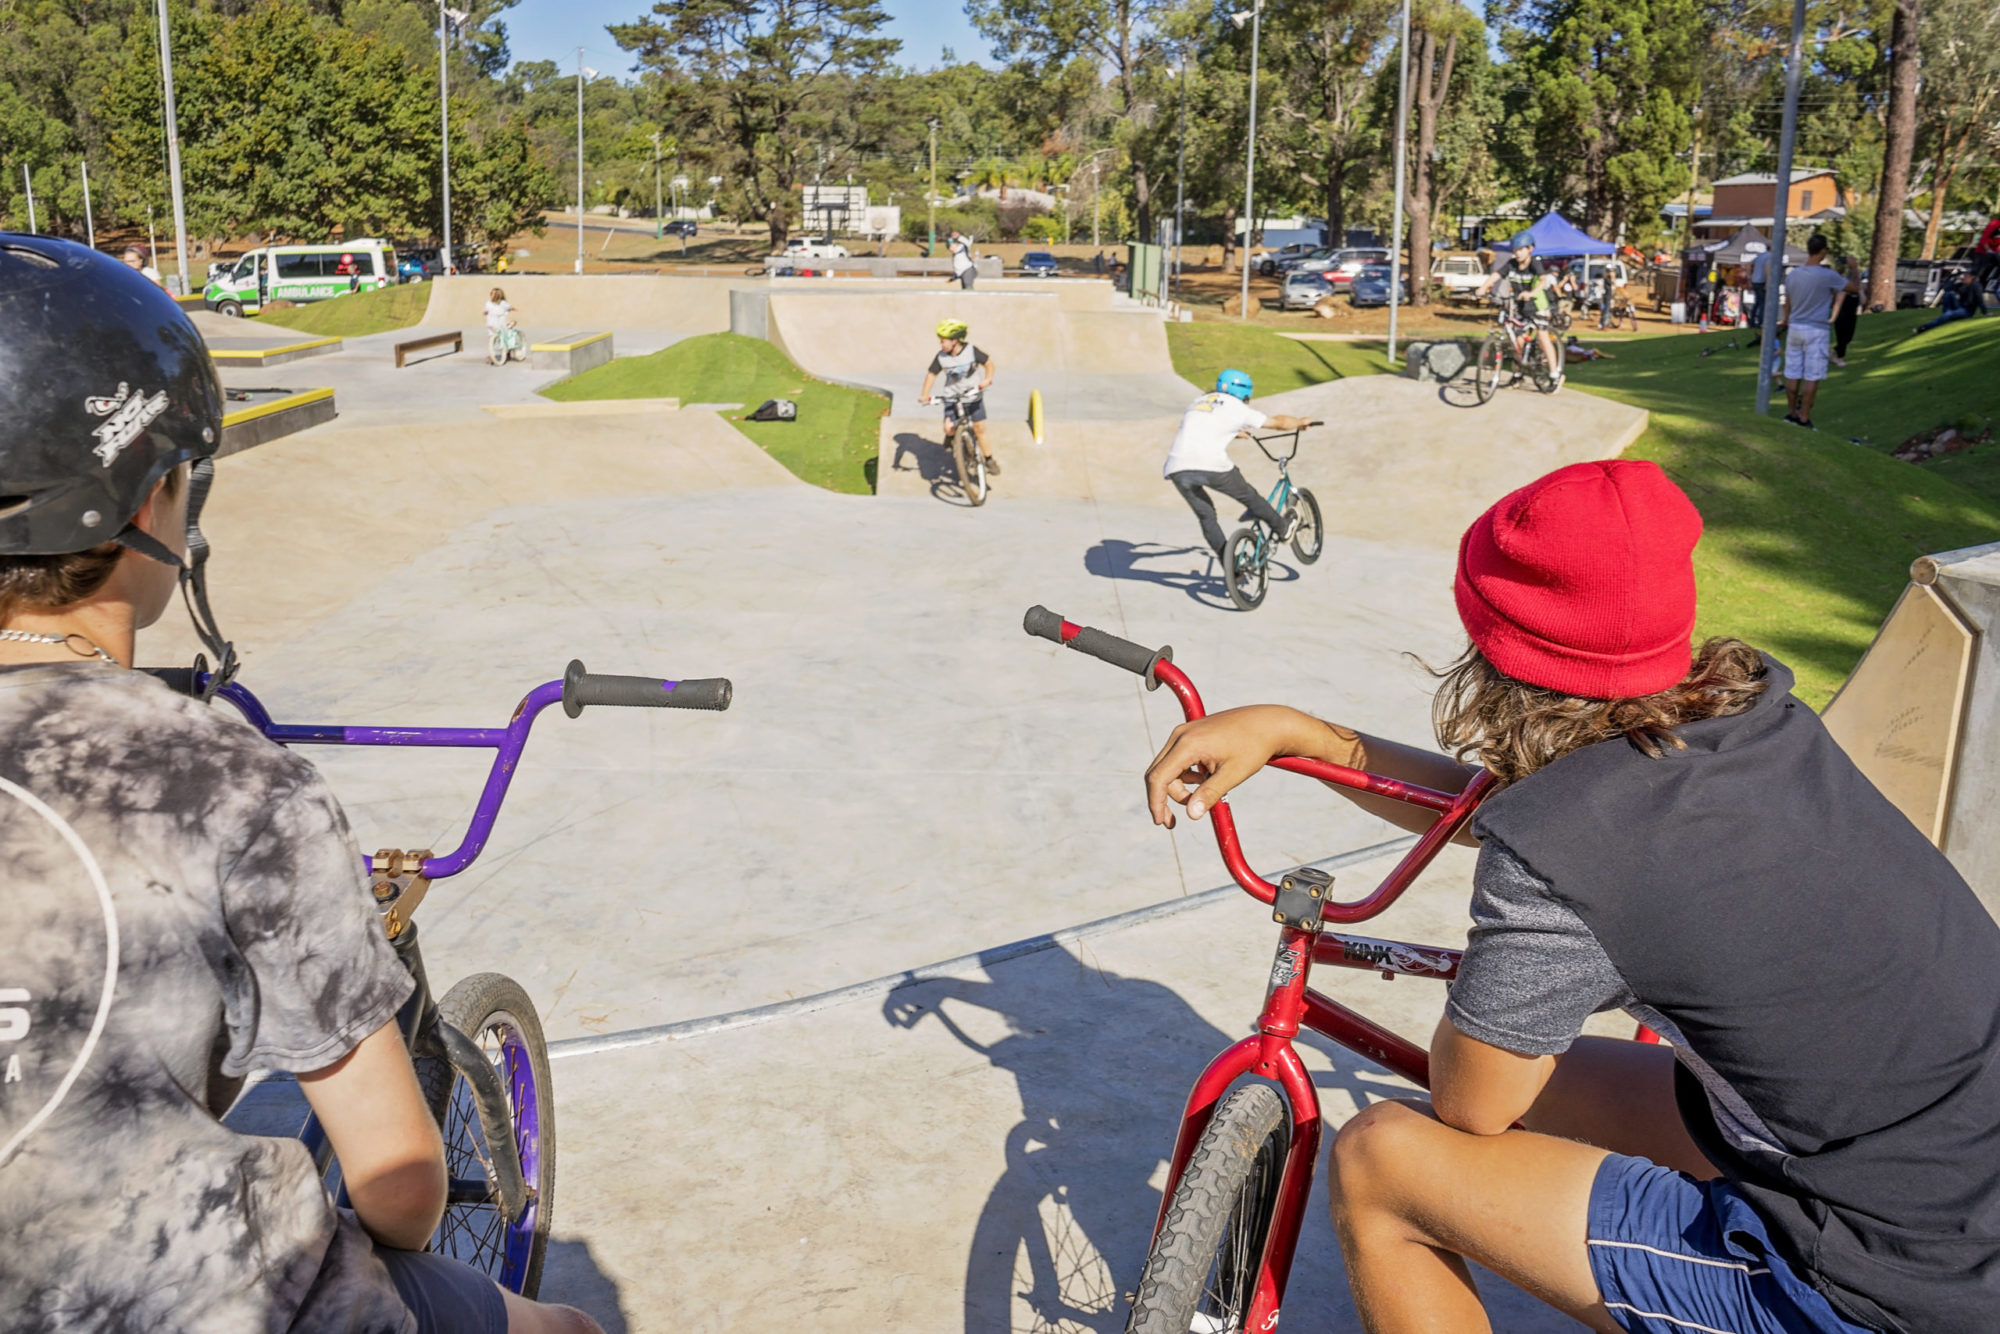 Dwellingup pump track and skate park